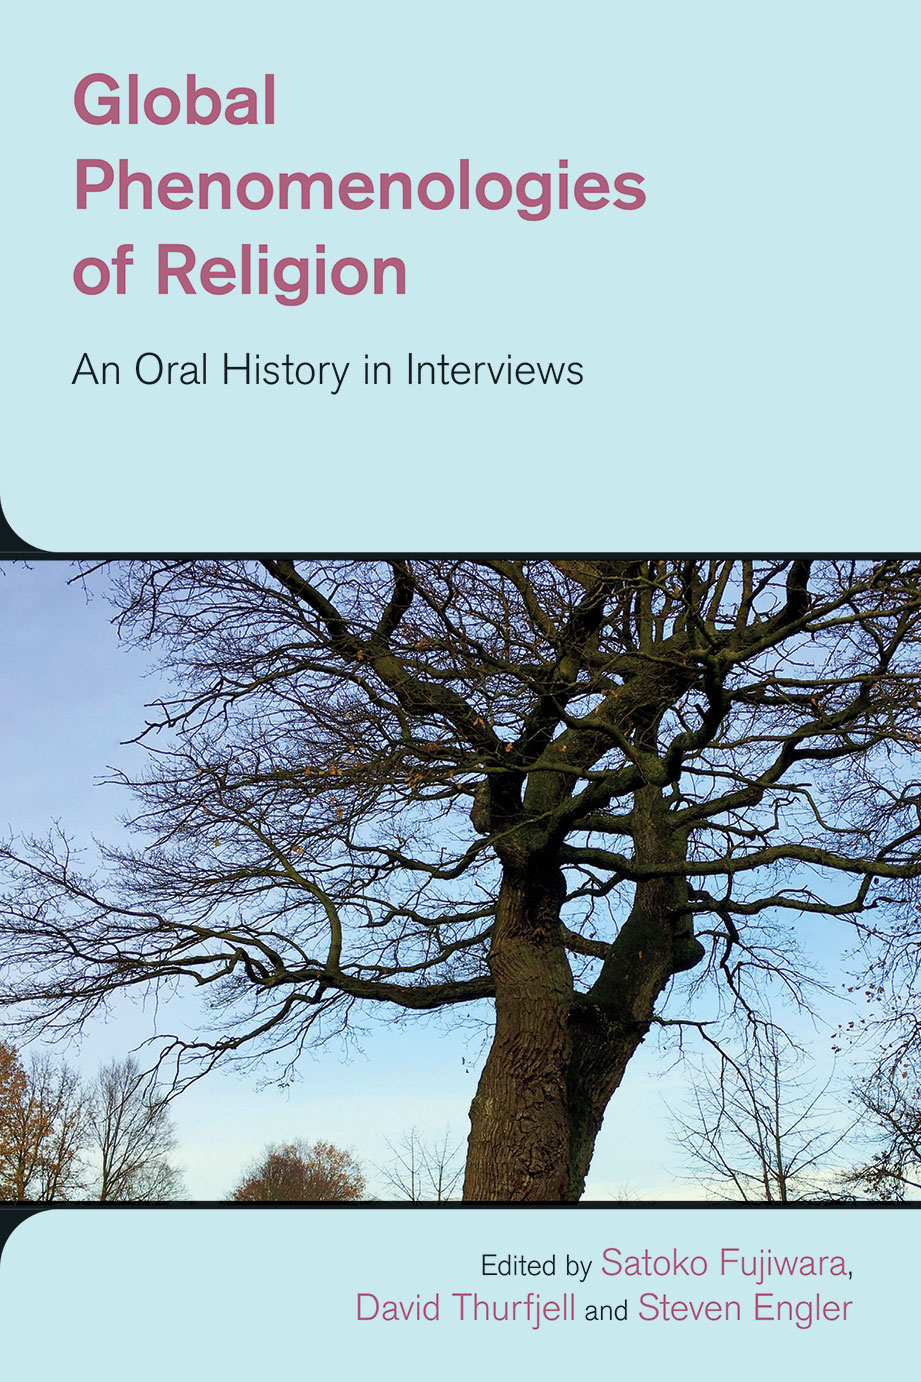 Global Phenomenologies of Religion